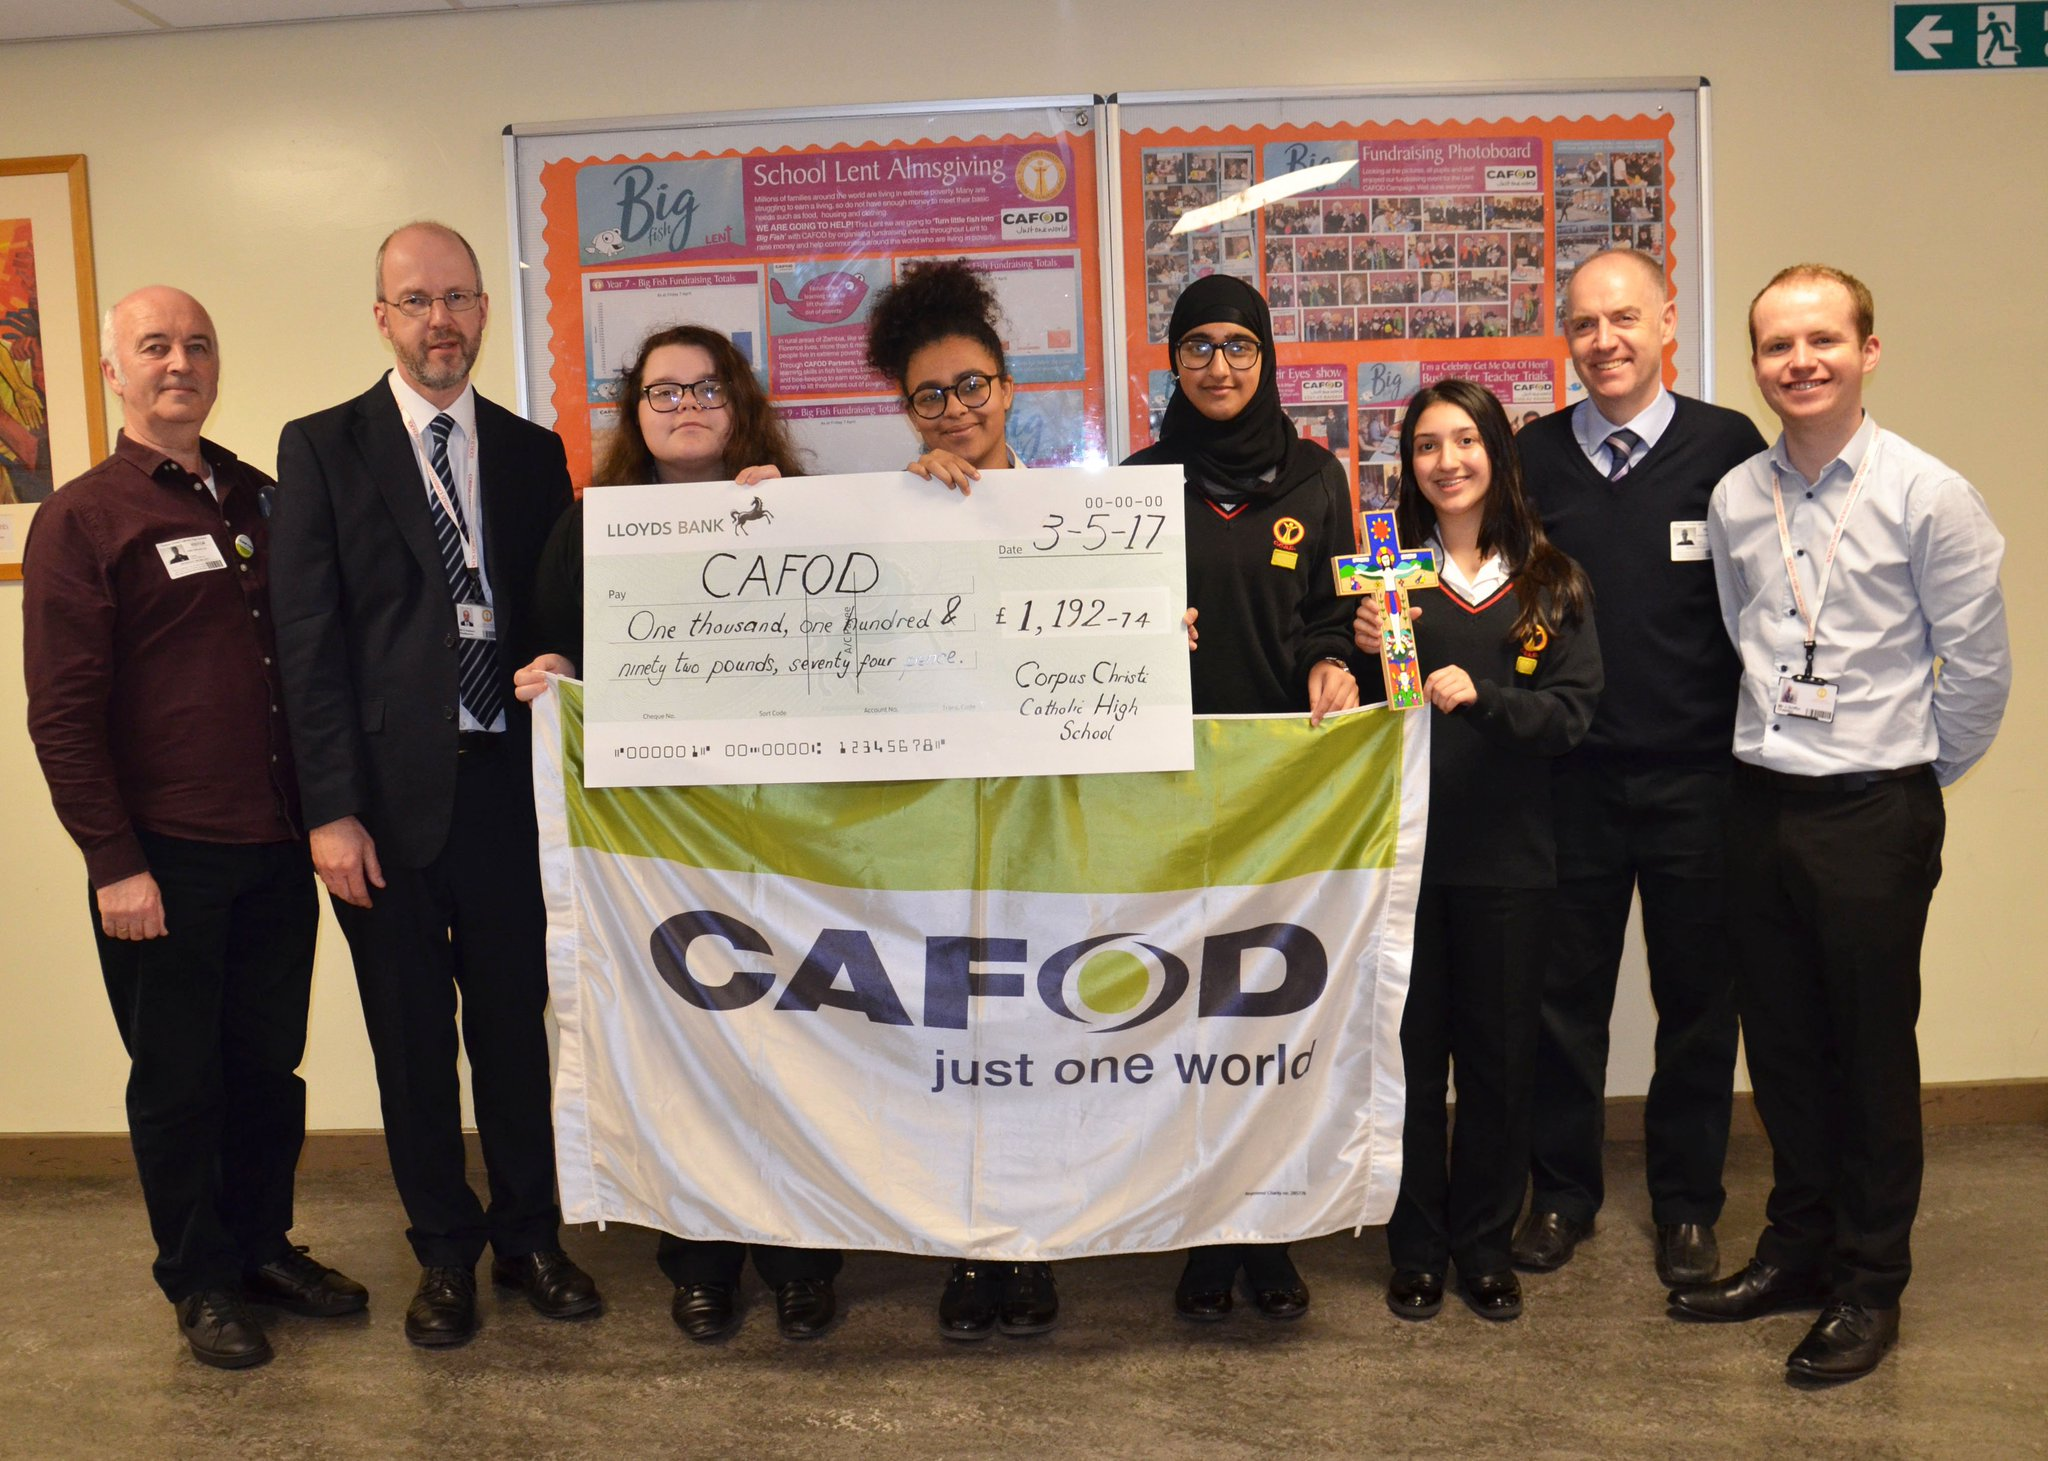 Phenomenal fundraising @CorpusChristiPR for @CAFOD #Lent appeal. Thank you to all staff & students for helping us transform lives this Lent. https://t.co/lun47PK3EY